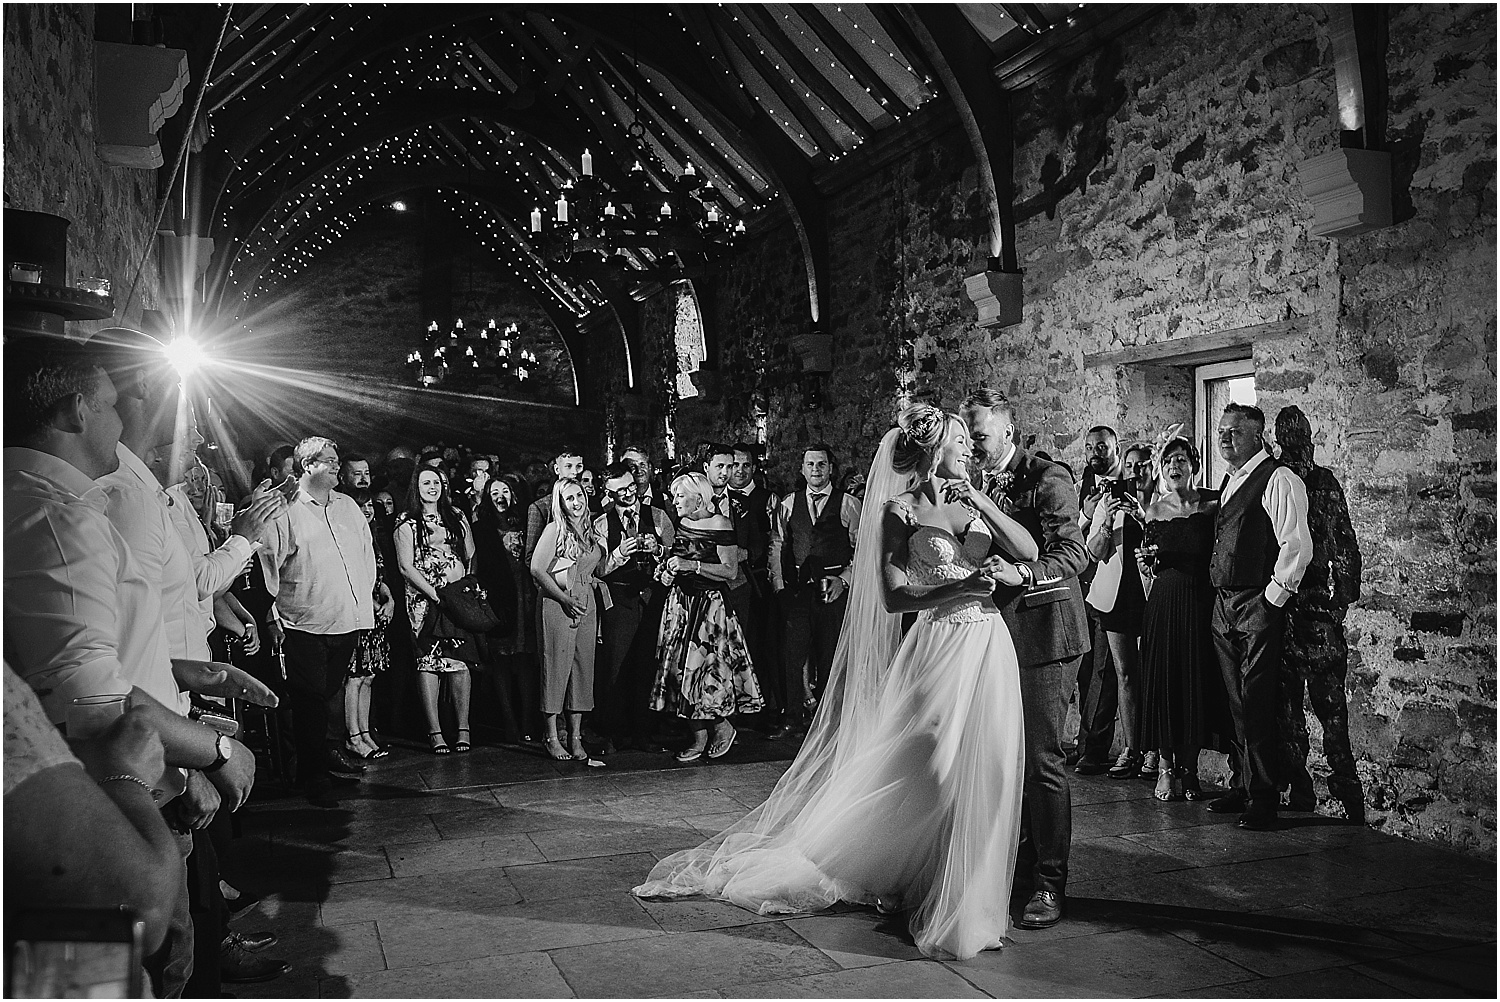 Wedding at Healey Barn - wedding photography by www.2tonephotography.co.uk 102.jpg